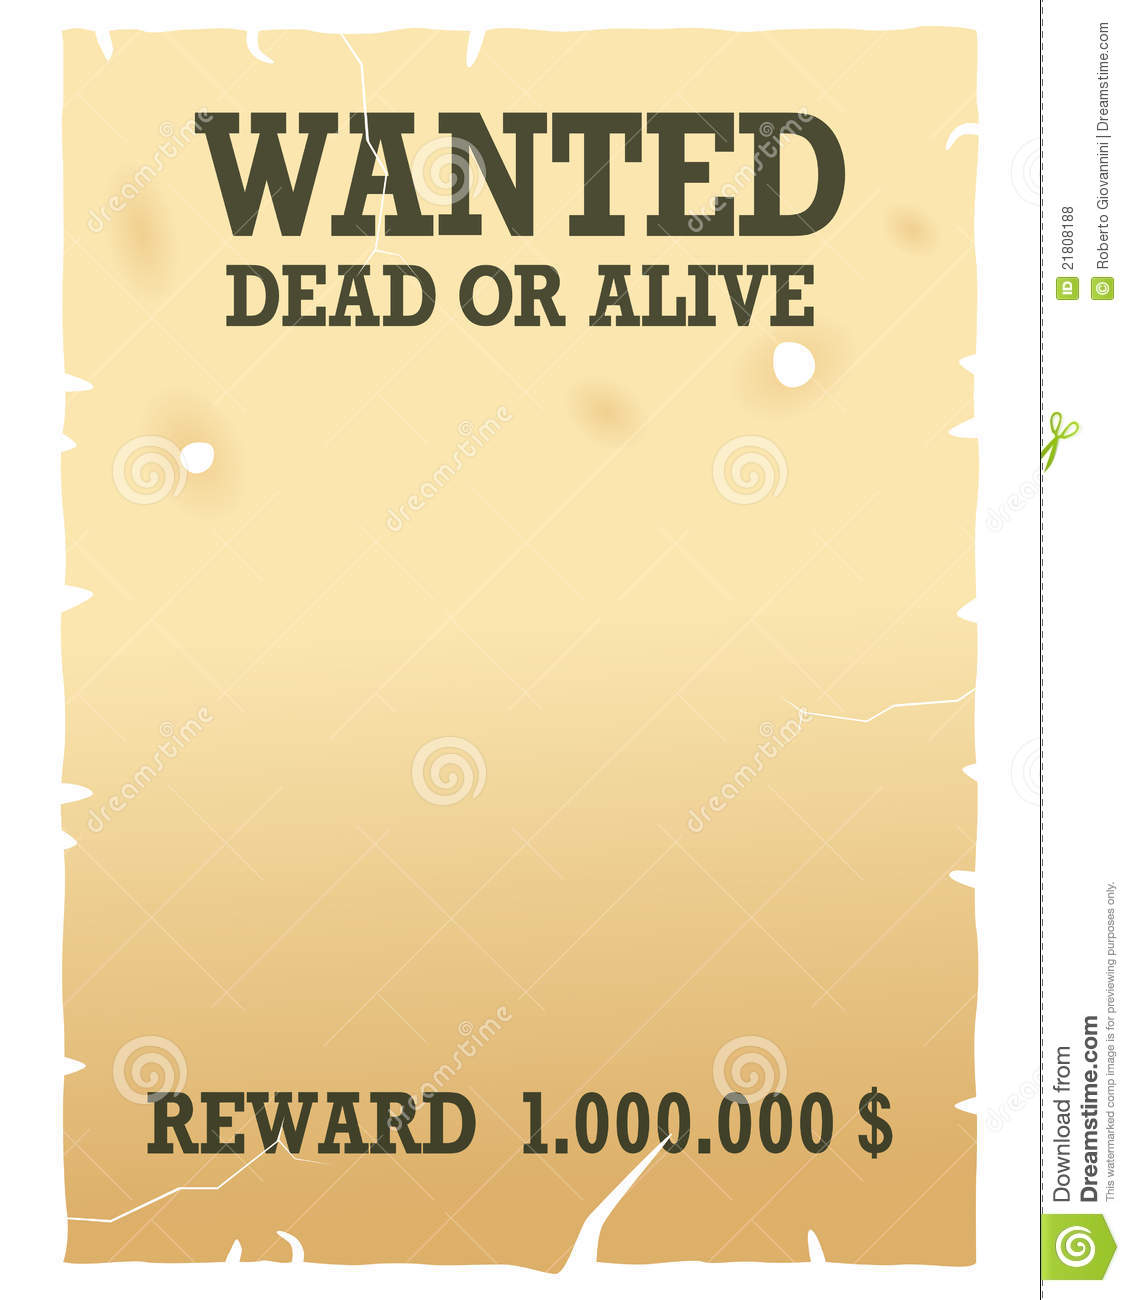 Pin blank wanted poster template for kids 785jpg on pinterest for Wanted dead or alive poster template free